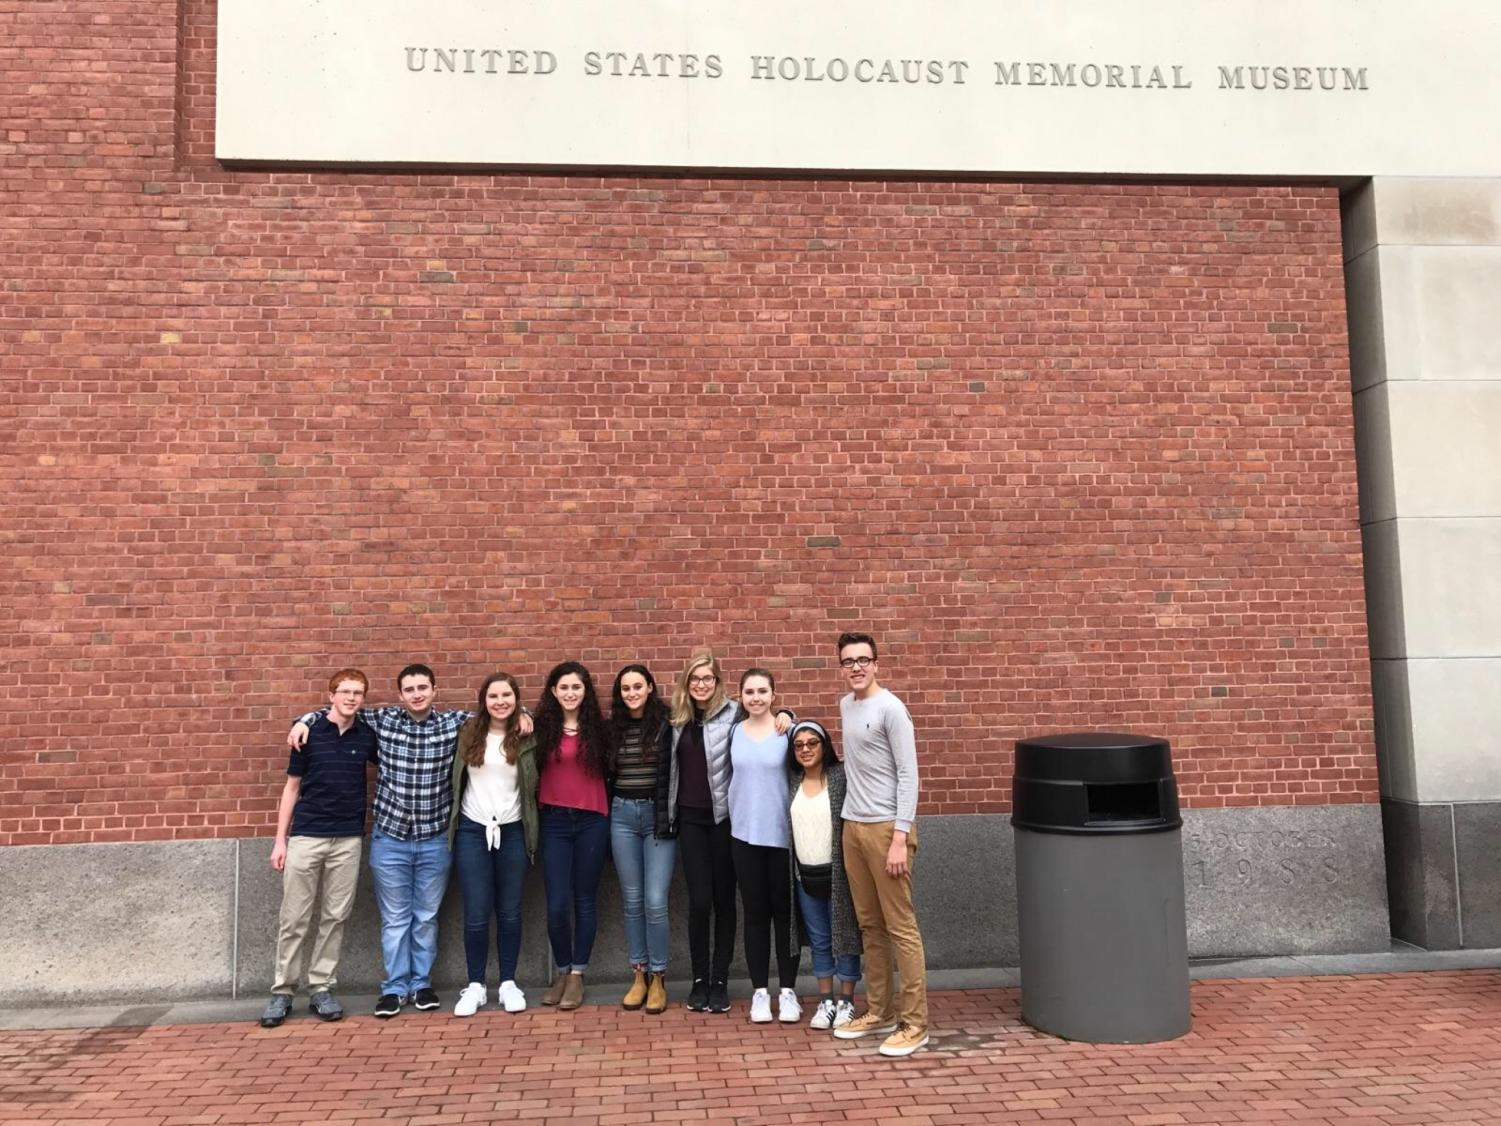 Sophomore Brayden Cardozo (second from the left) stands outside the United States Holocaust Memorial Museum with other students chosen through the Together We Remember program.